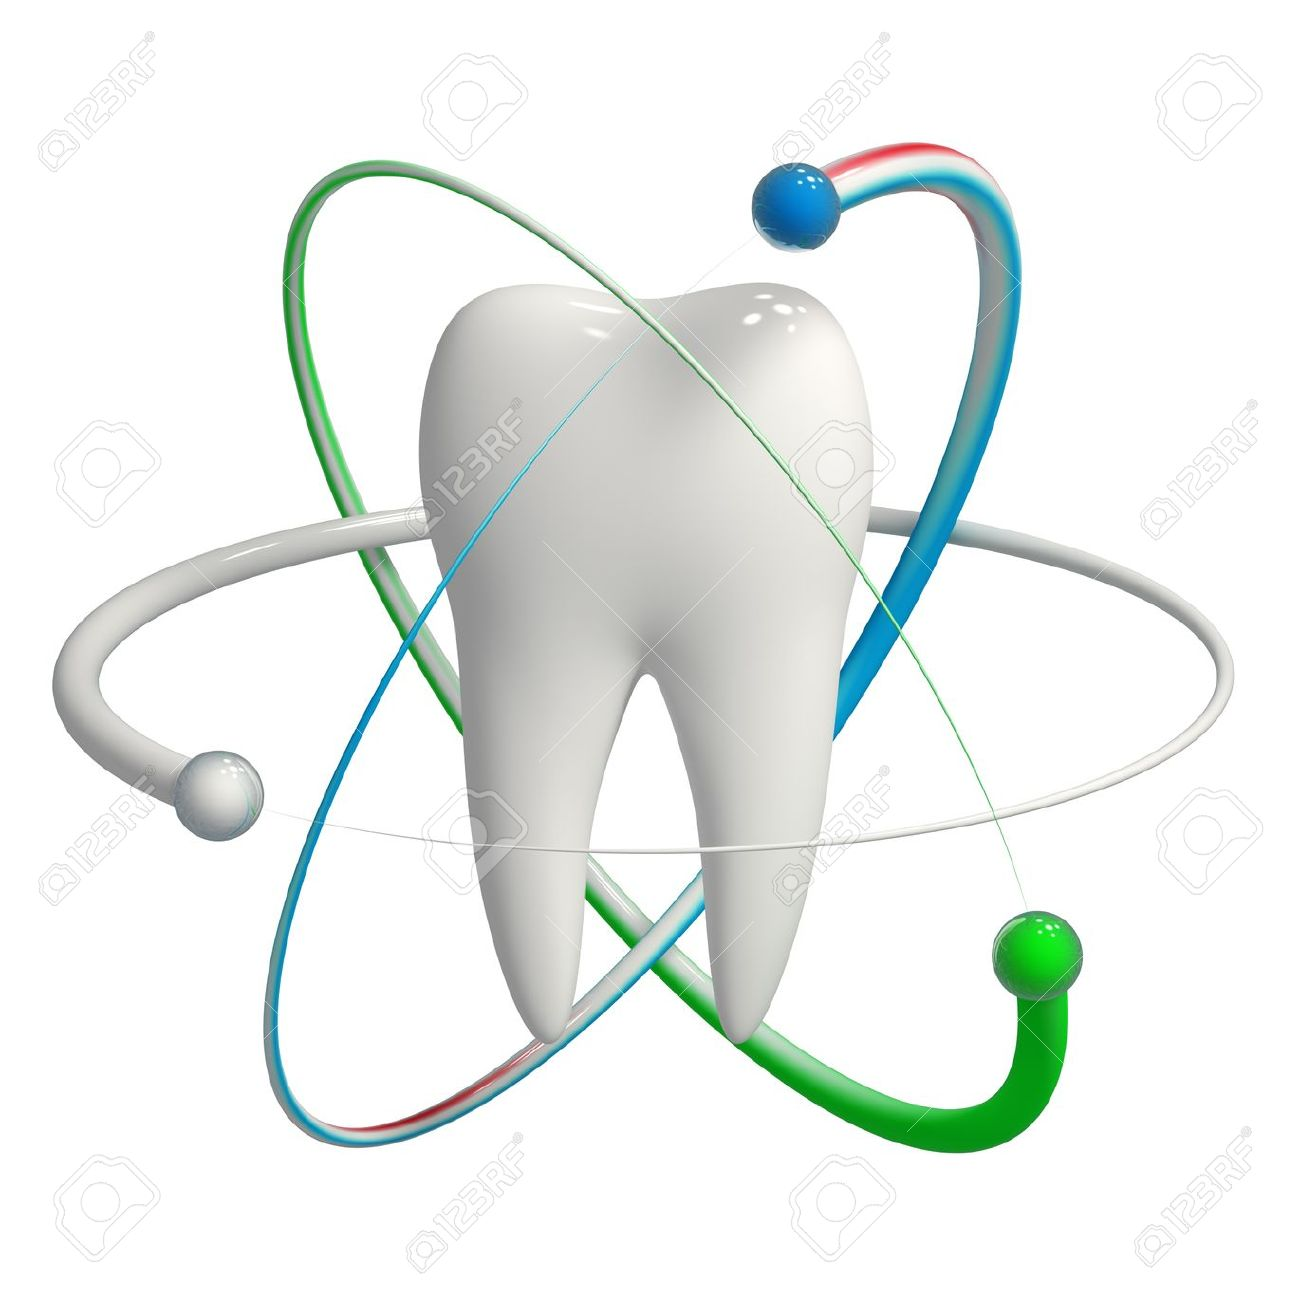 Herbal And Fluoride Protection Icon Of A Tooth Stock Photo.